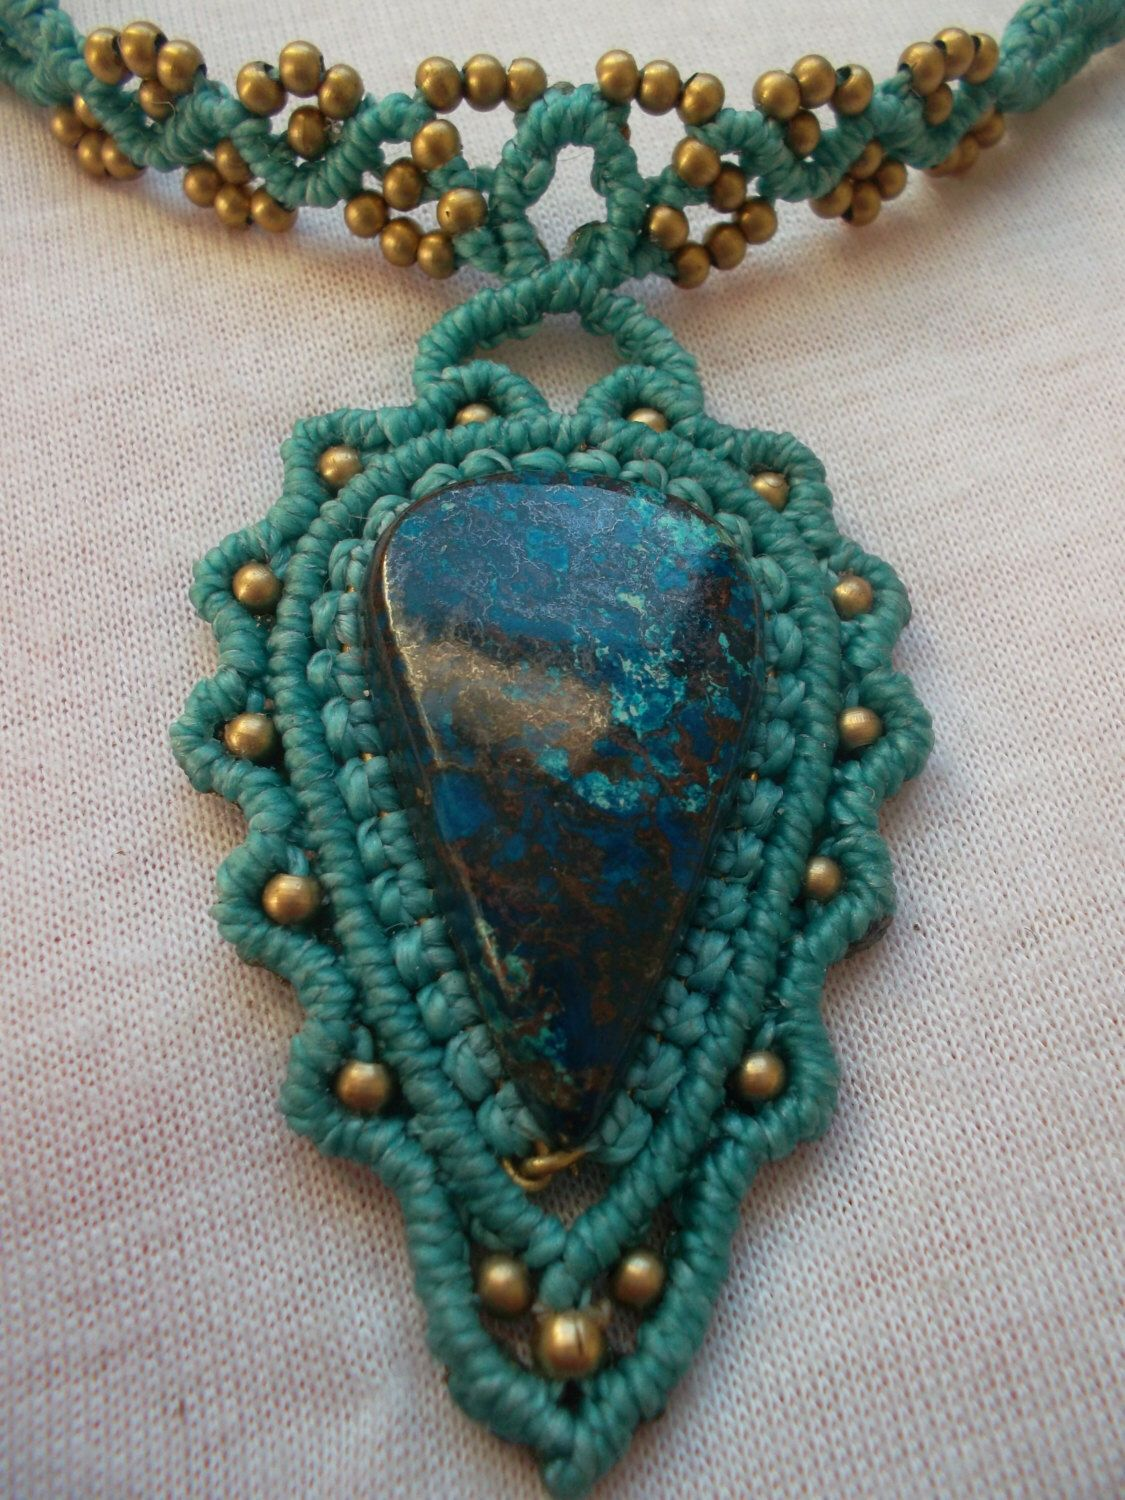 Sattuckite crimped in macramé made whit waxed thread and brass by LunaticHands on Etsy https://www.etsy.com/listing/227950094/sattuckite-crimped-in-macrame-made-whit